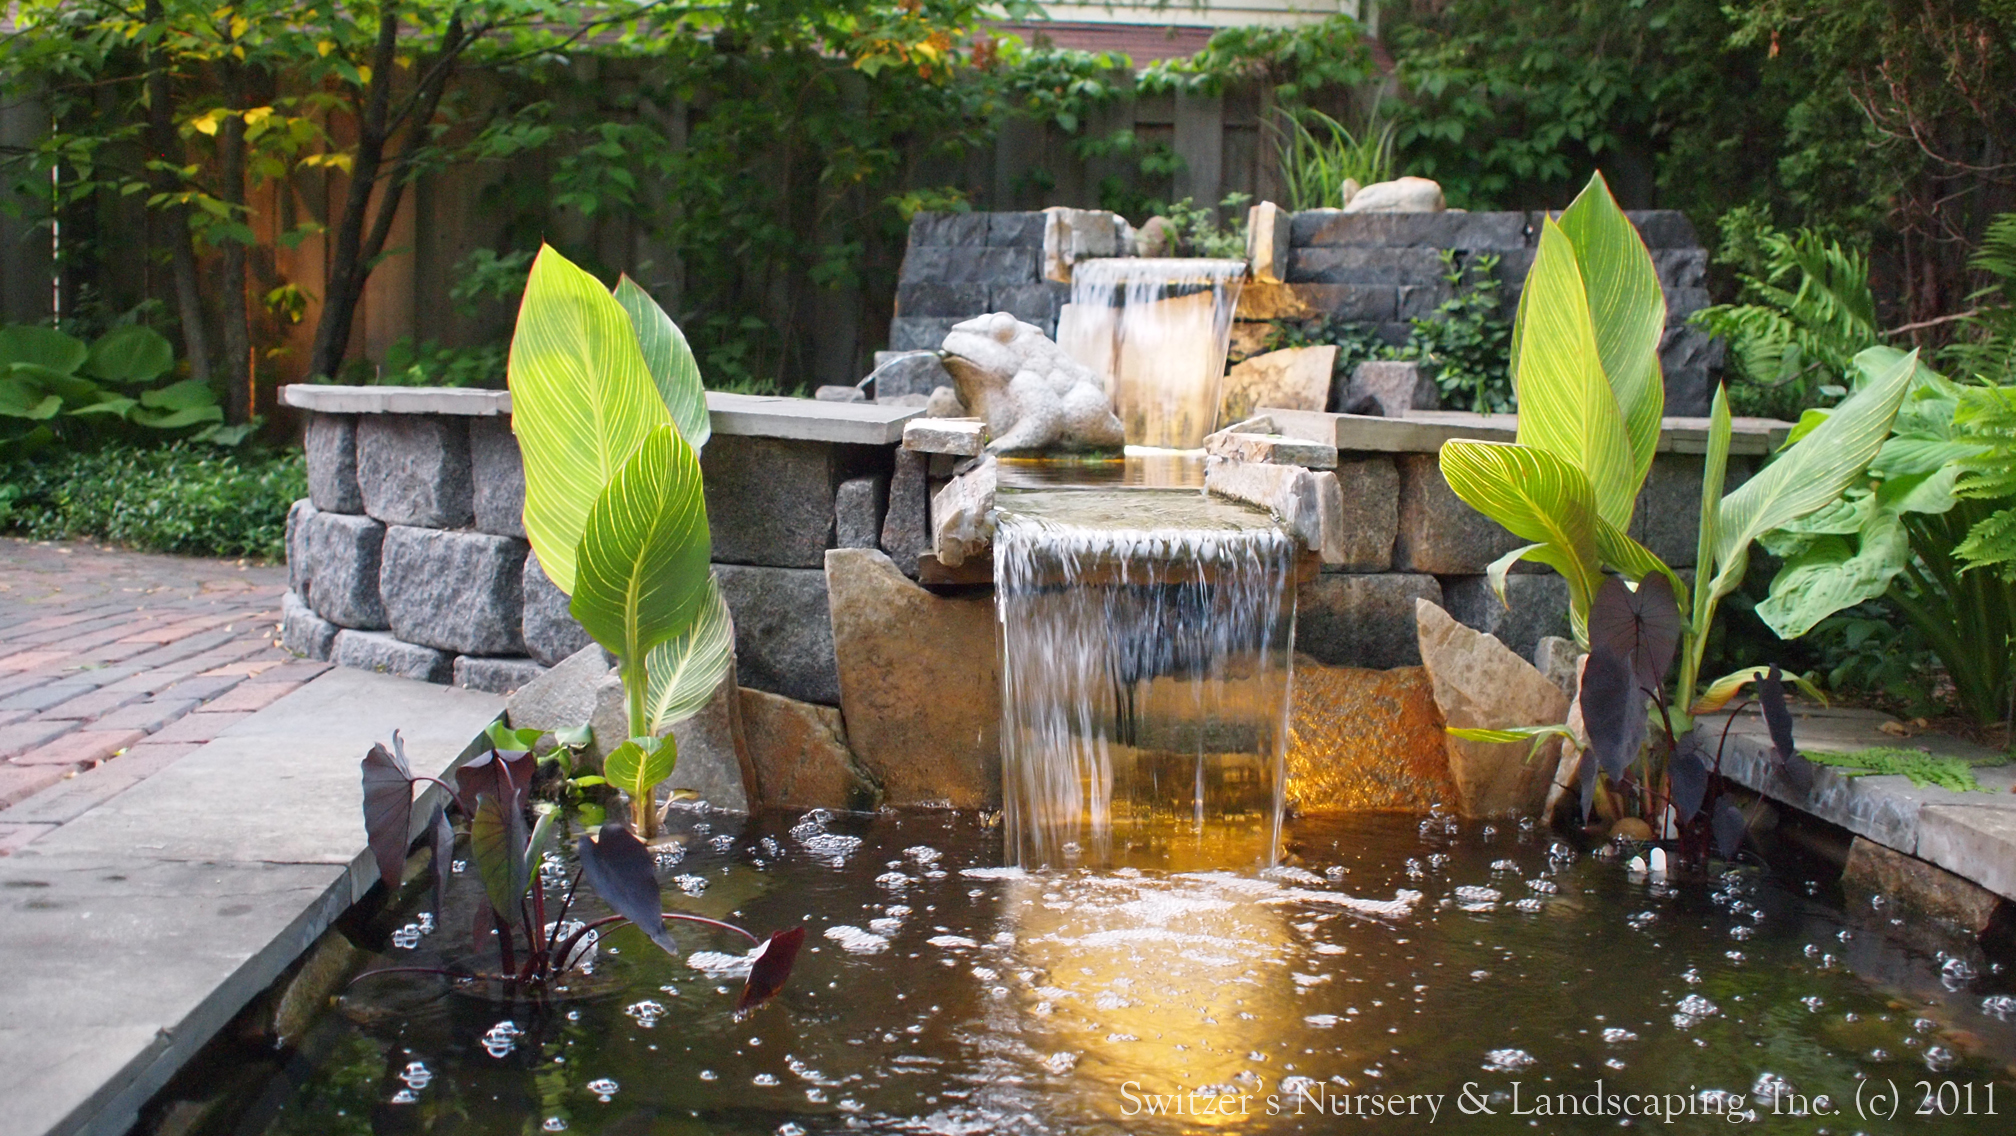 Minnesota landscape design inspired by bali natural for Water landscape design